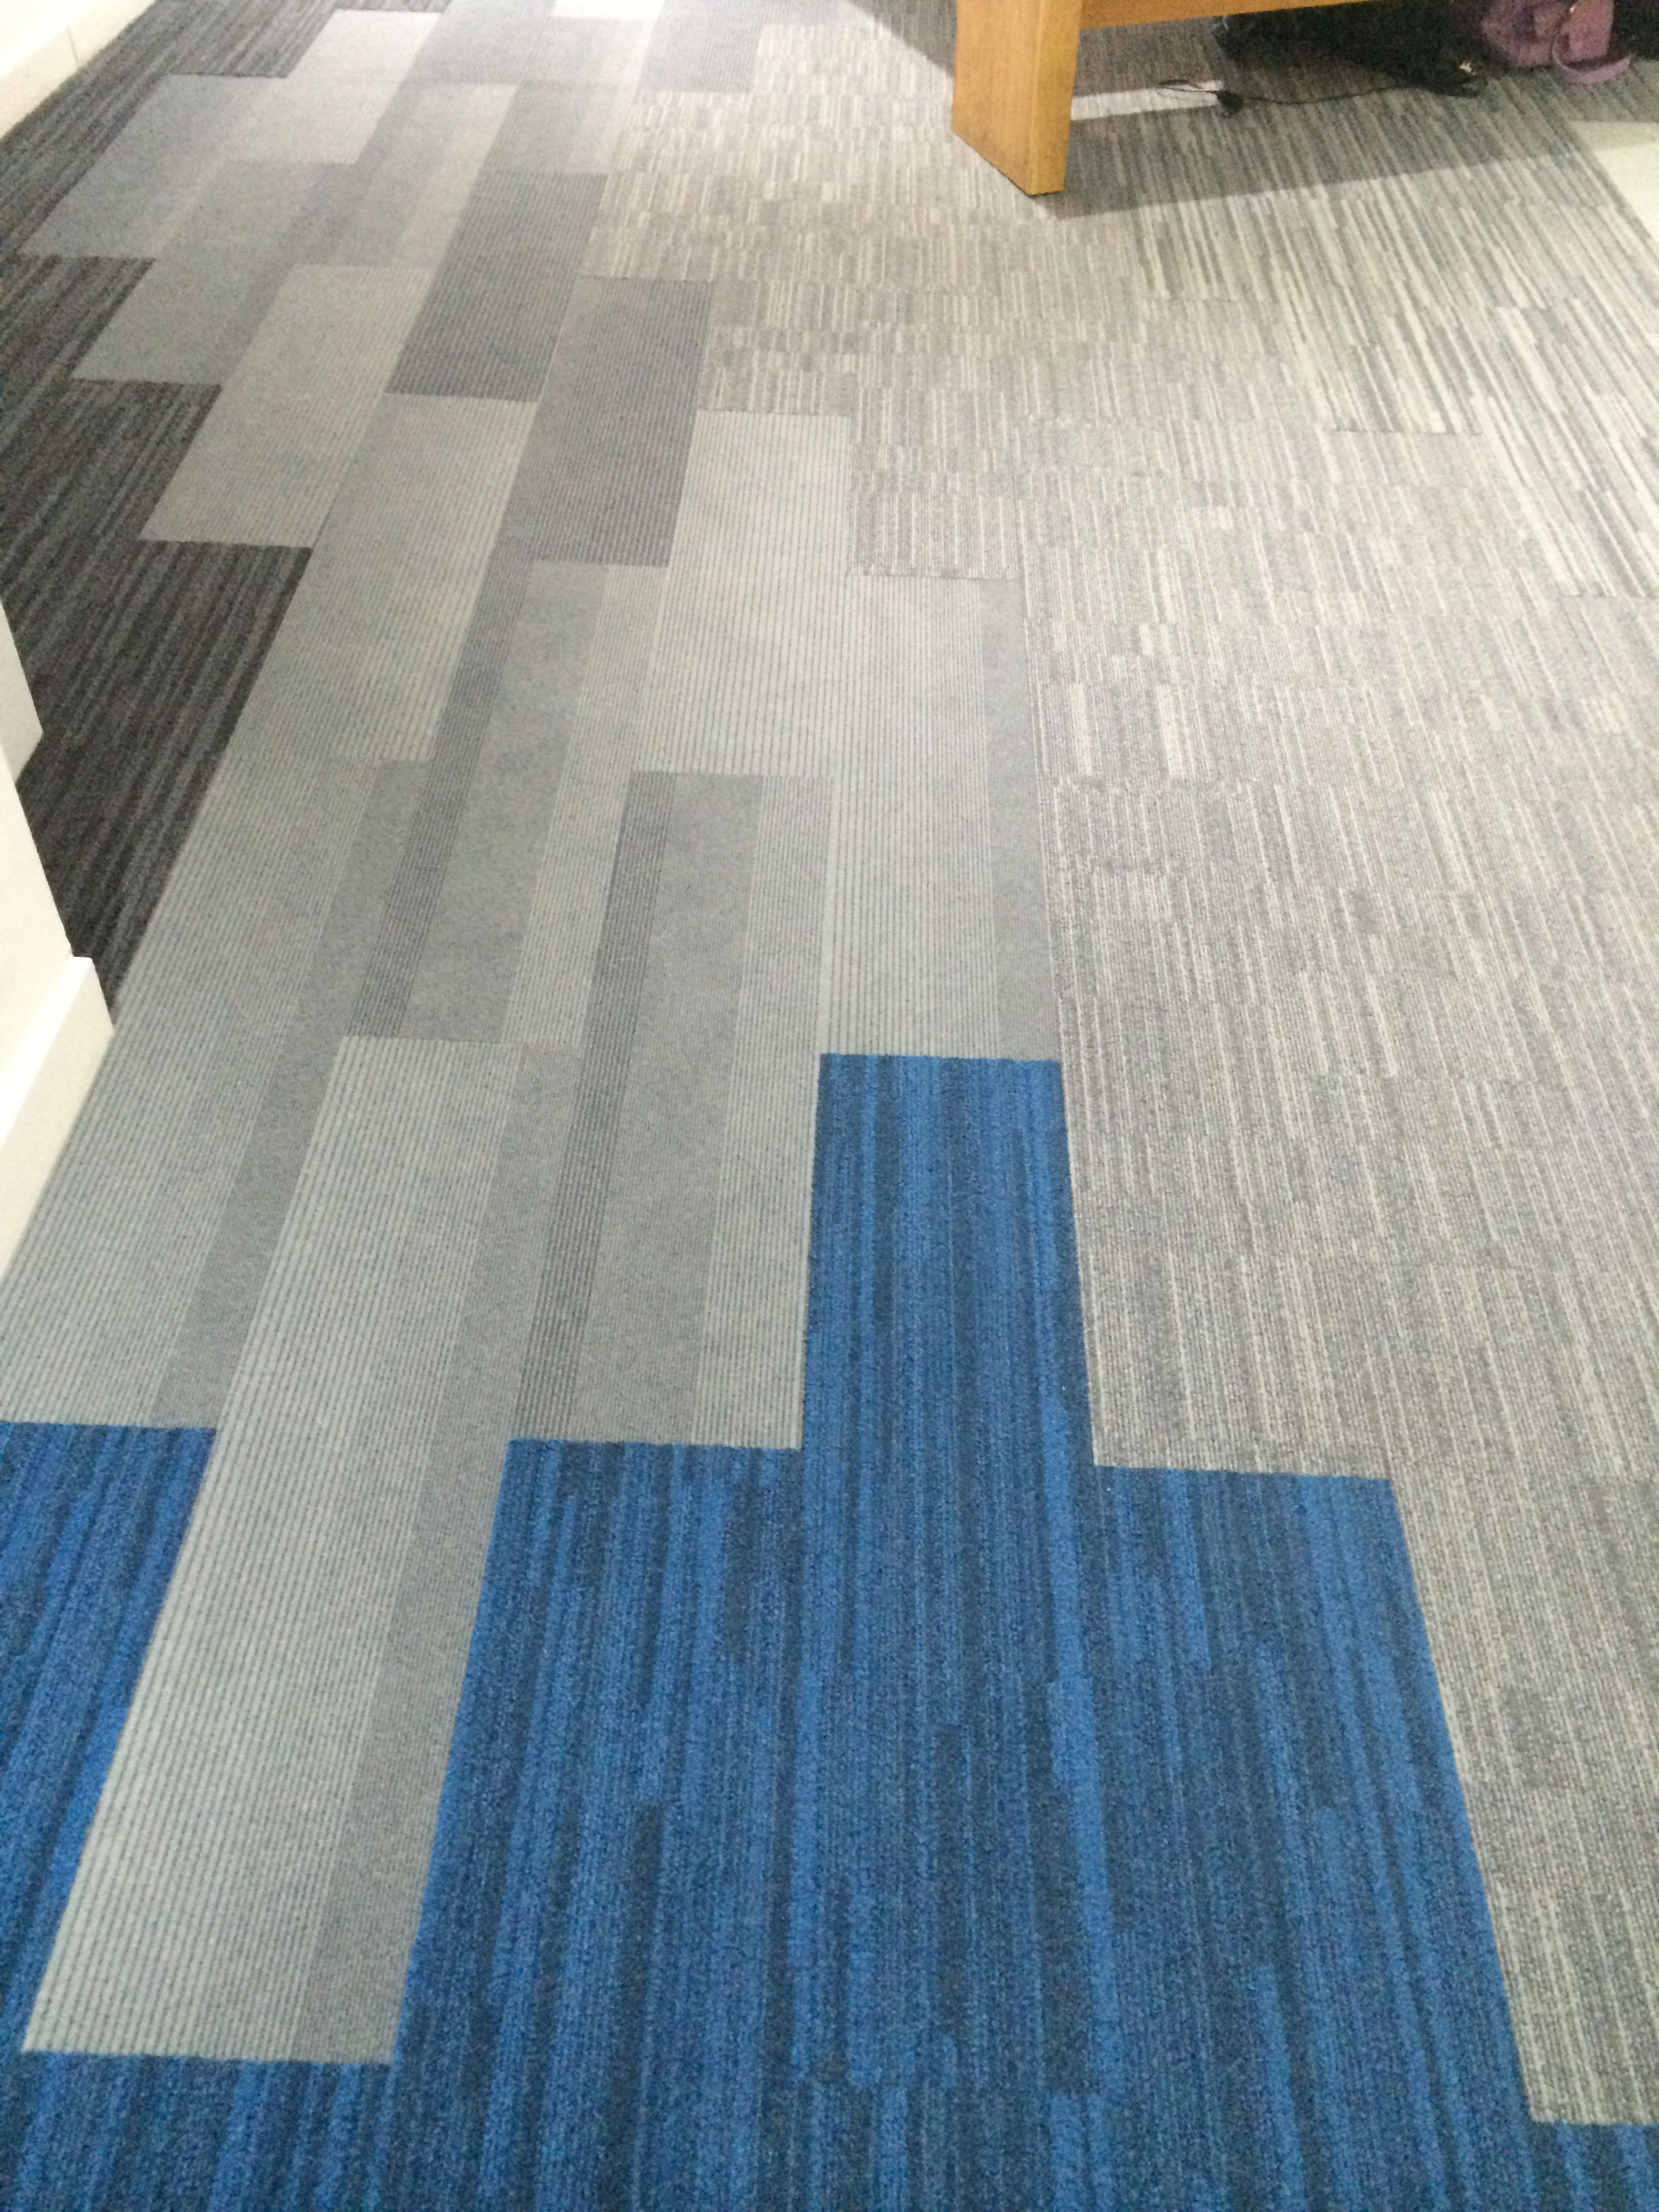 Carpet Tile Planks By Interface Flooring Available At Creedmiles